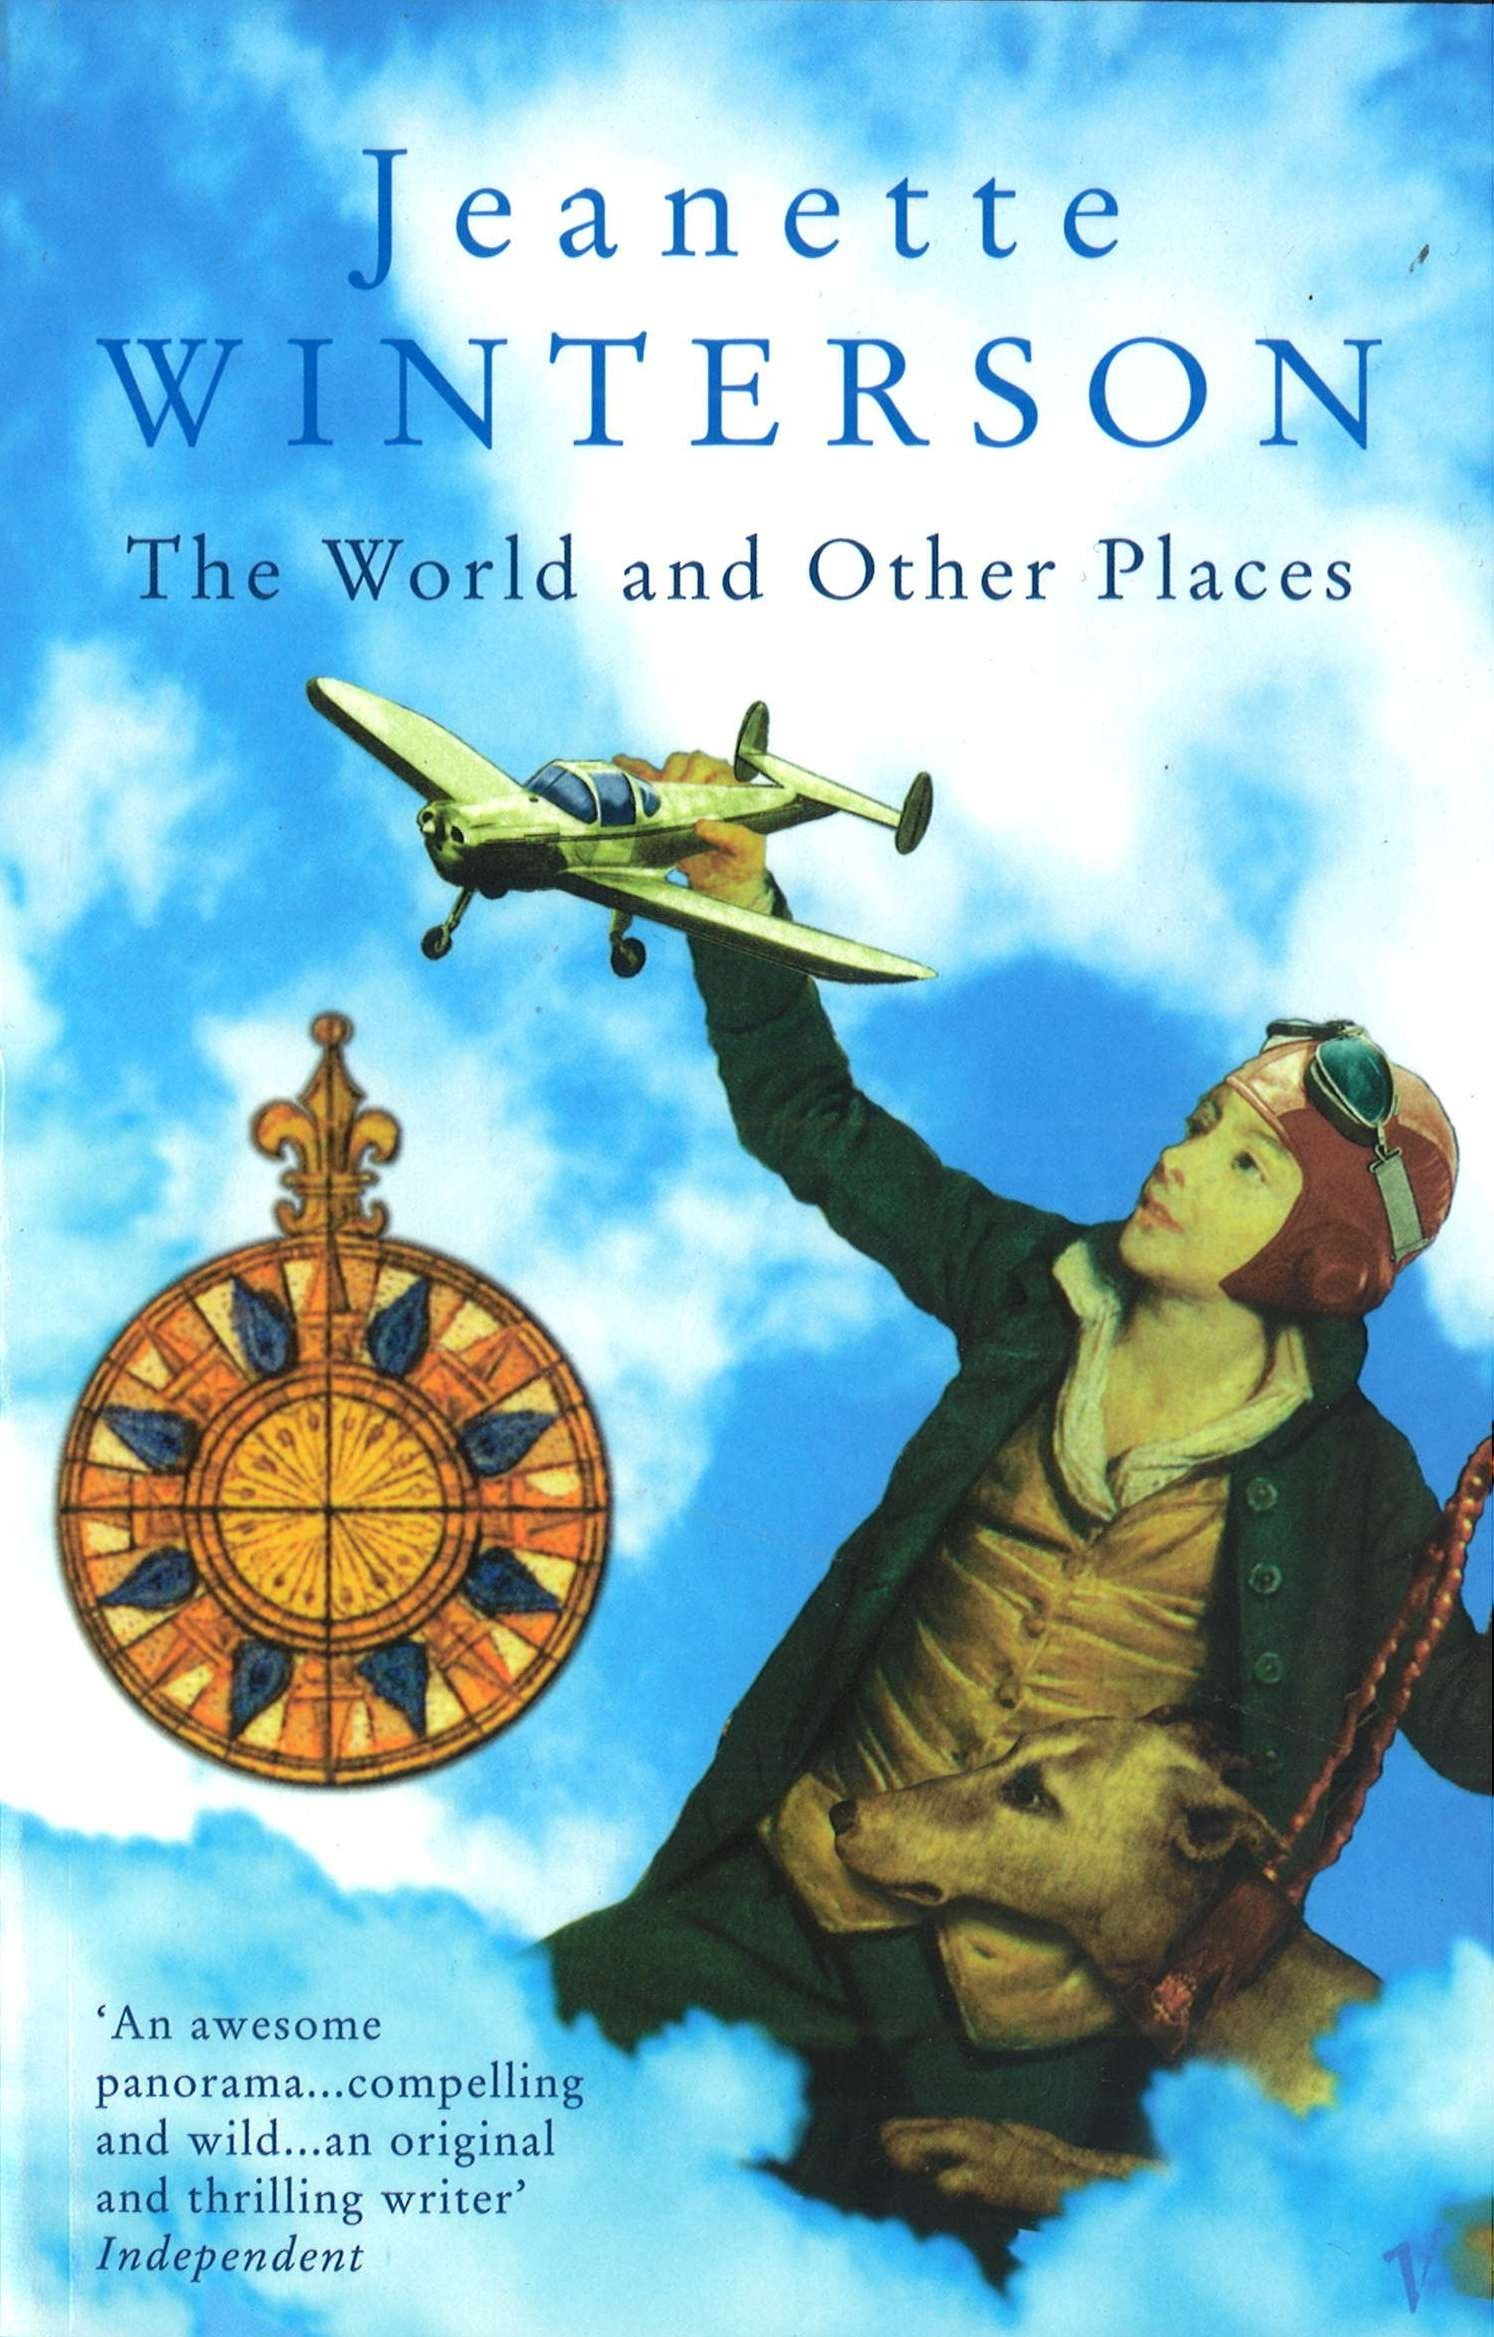 Jeannette Winterson - The World and Other Places. Erzählungen